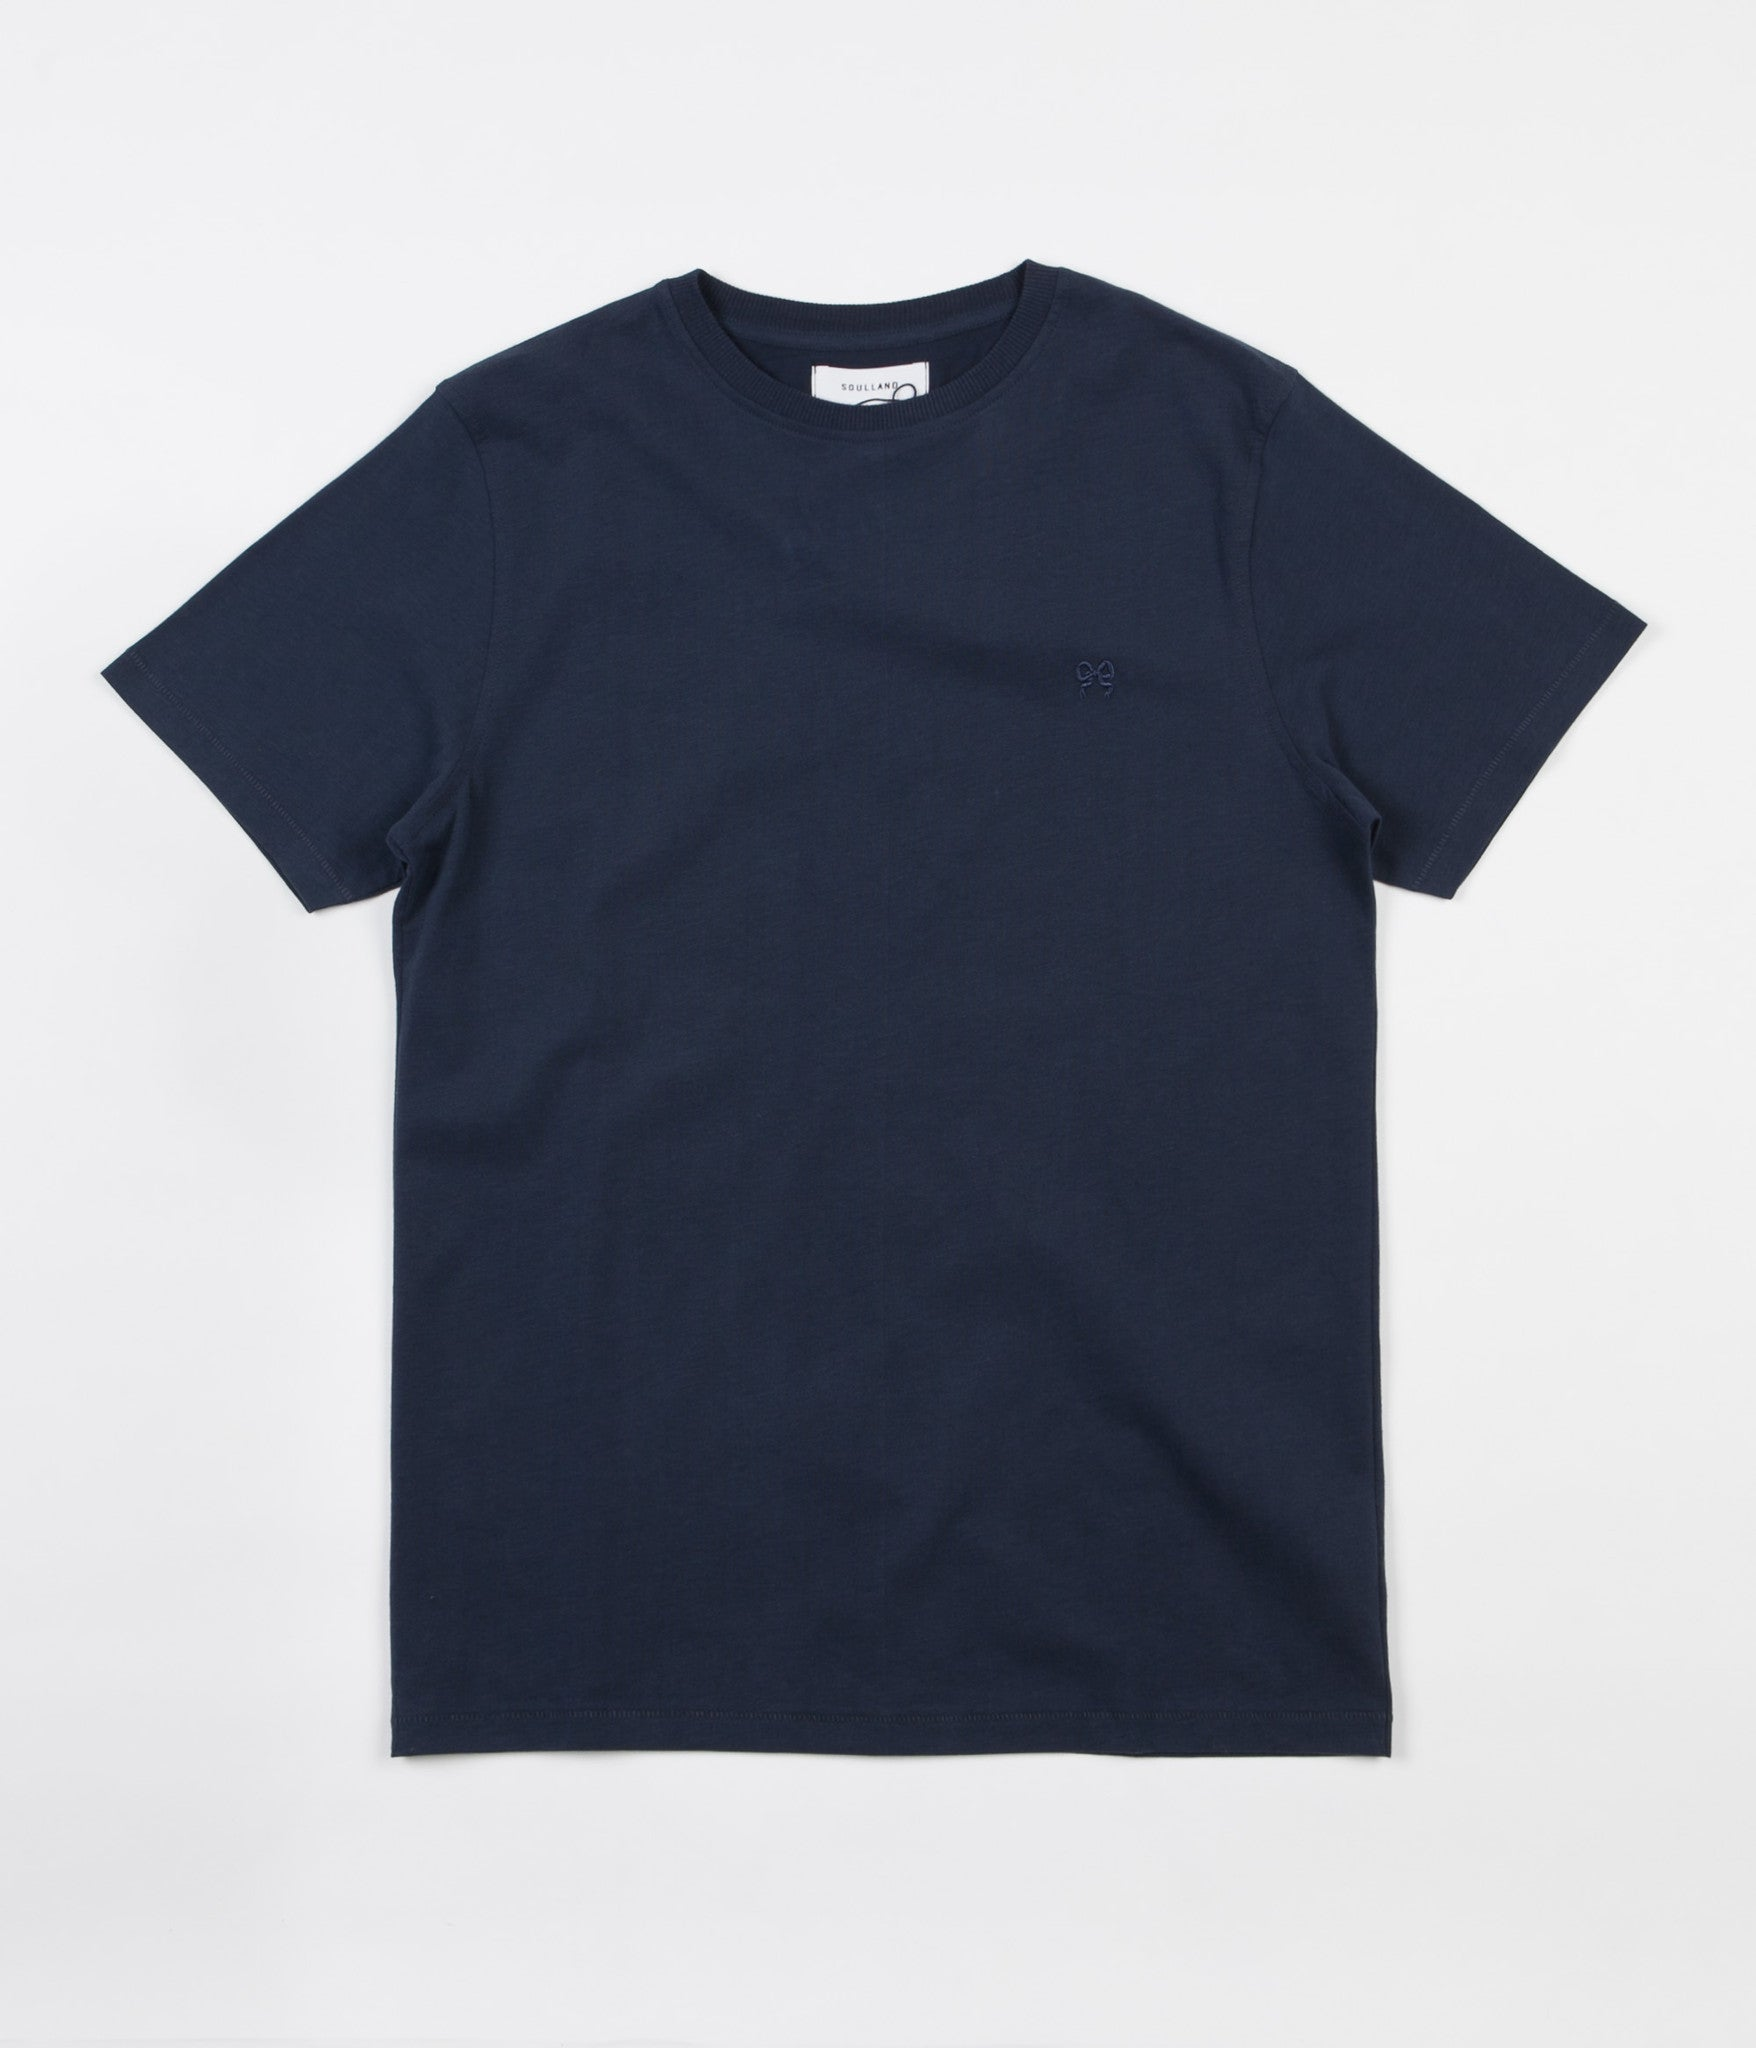 Soulland NOS Whatever T-Shirt - Navy